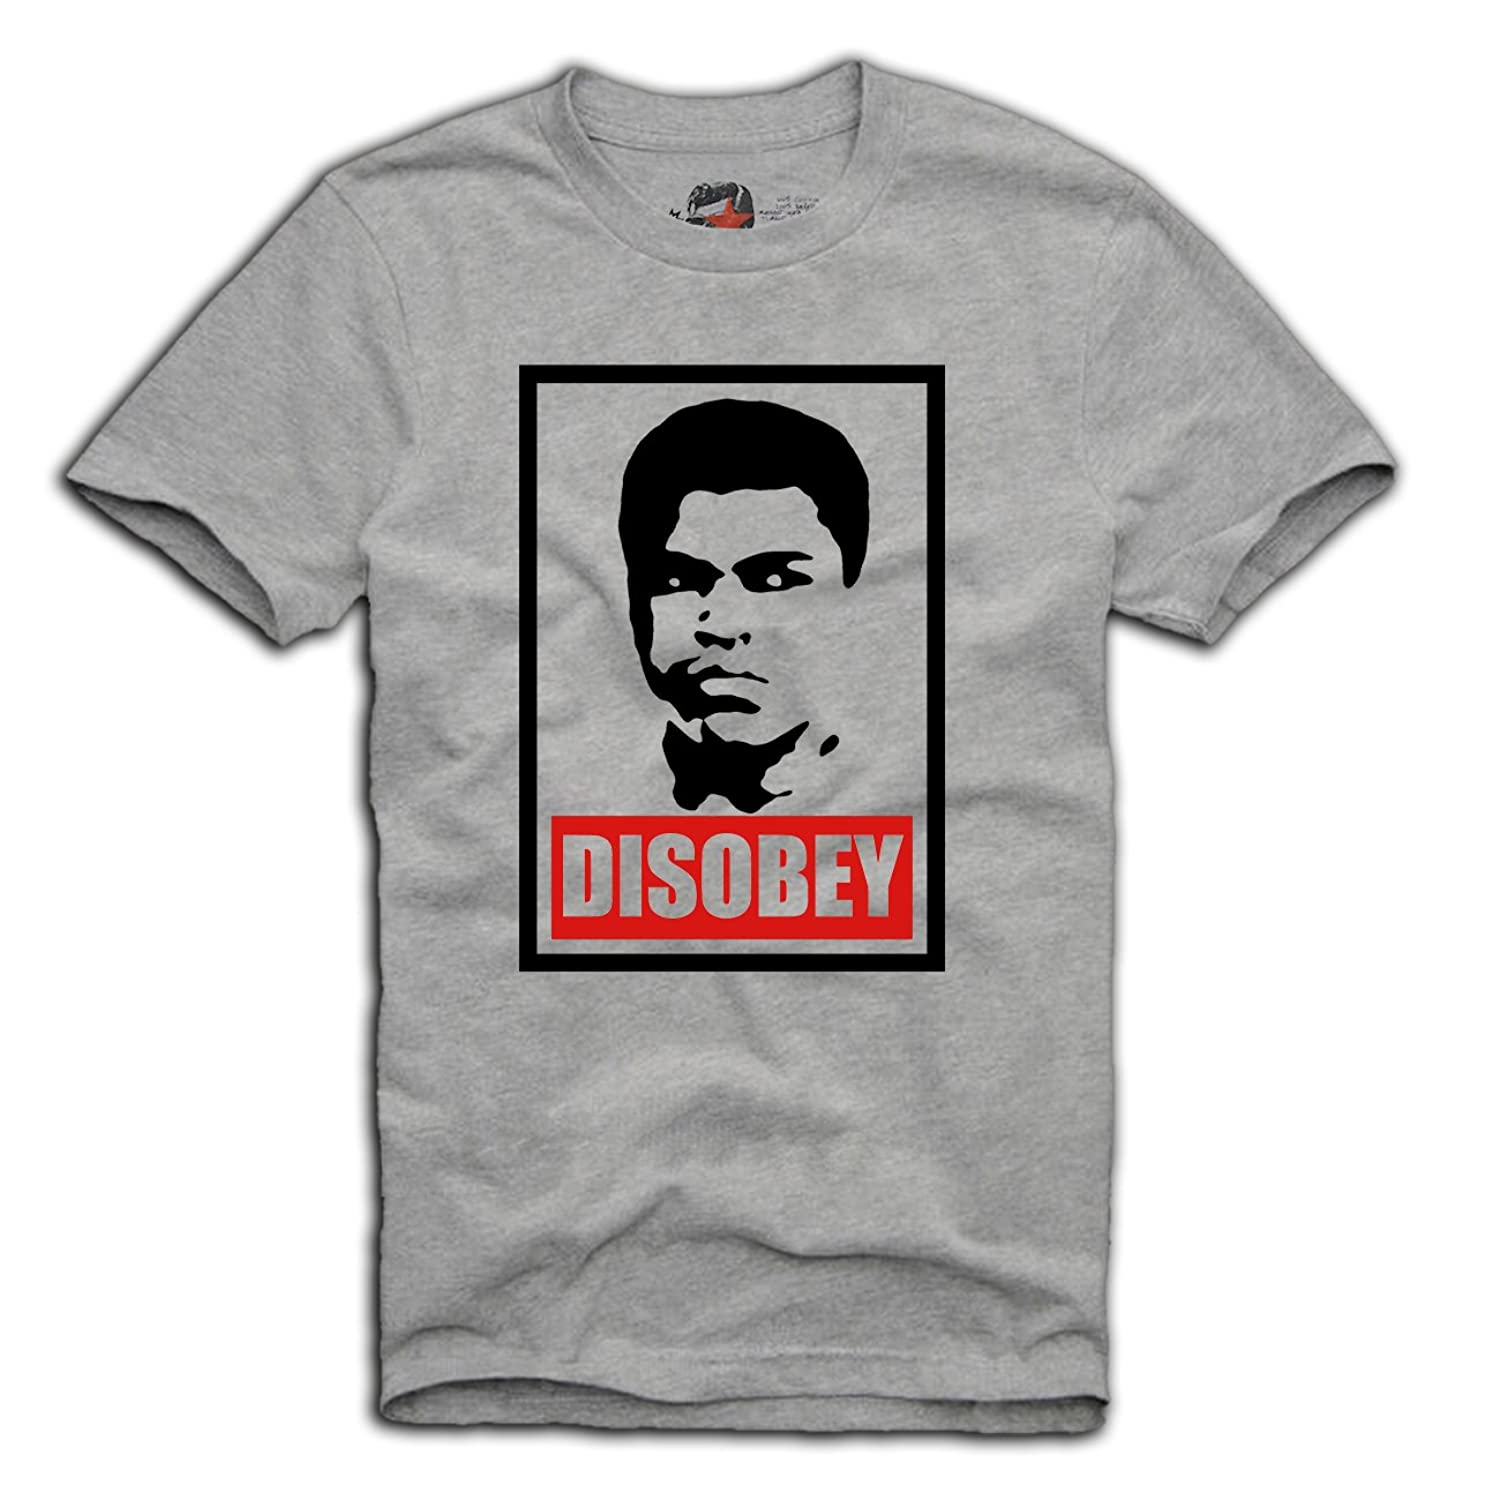 muhammad ali cassius clay disobey t shirt ebay. Black Bedroom Furniture Sets. Home Design Ideas